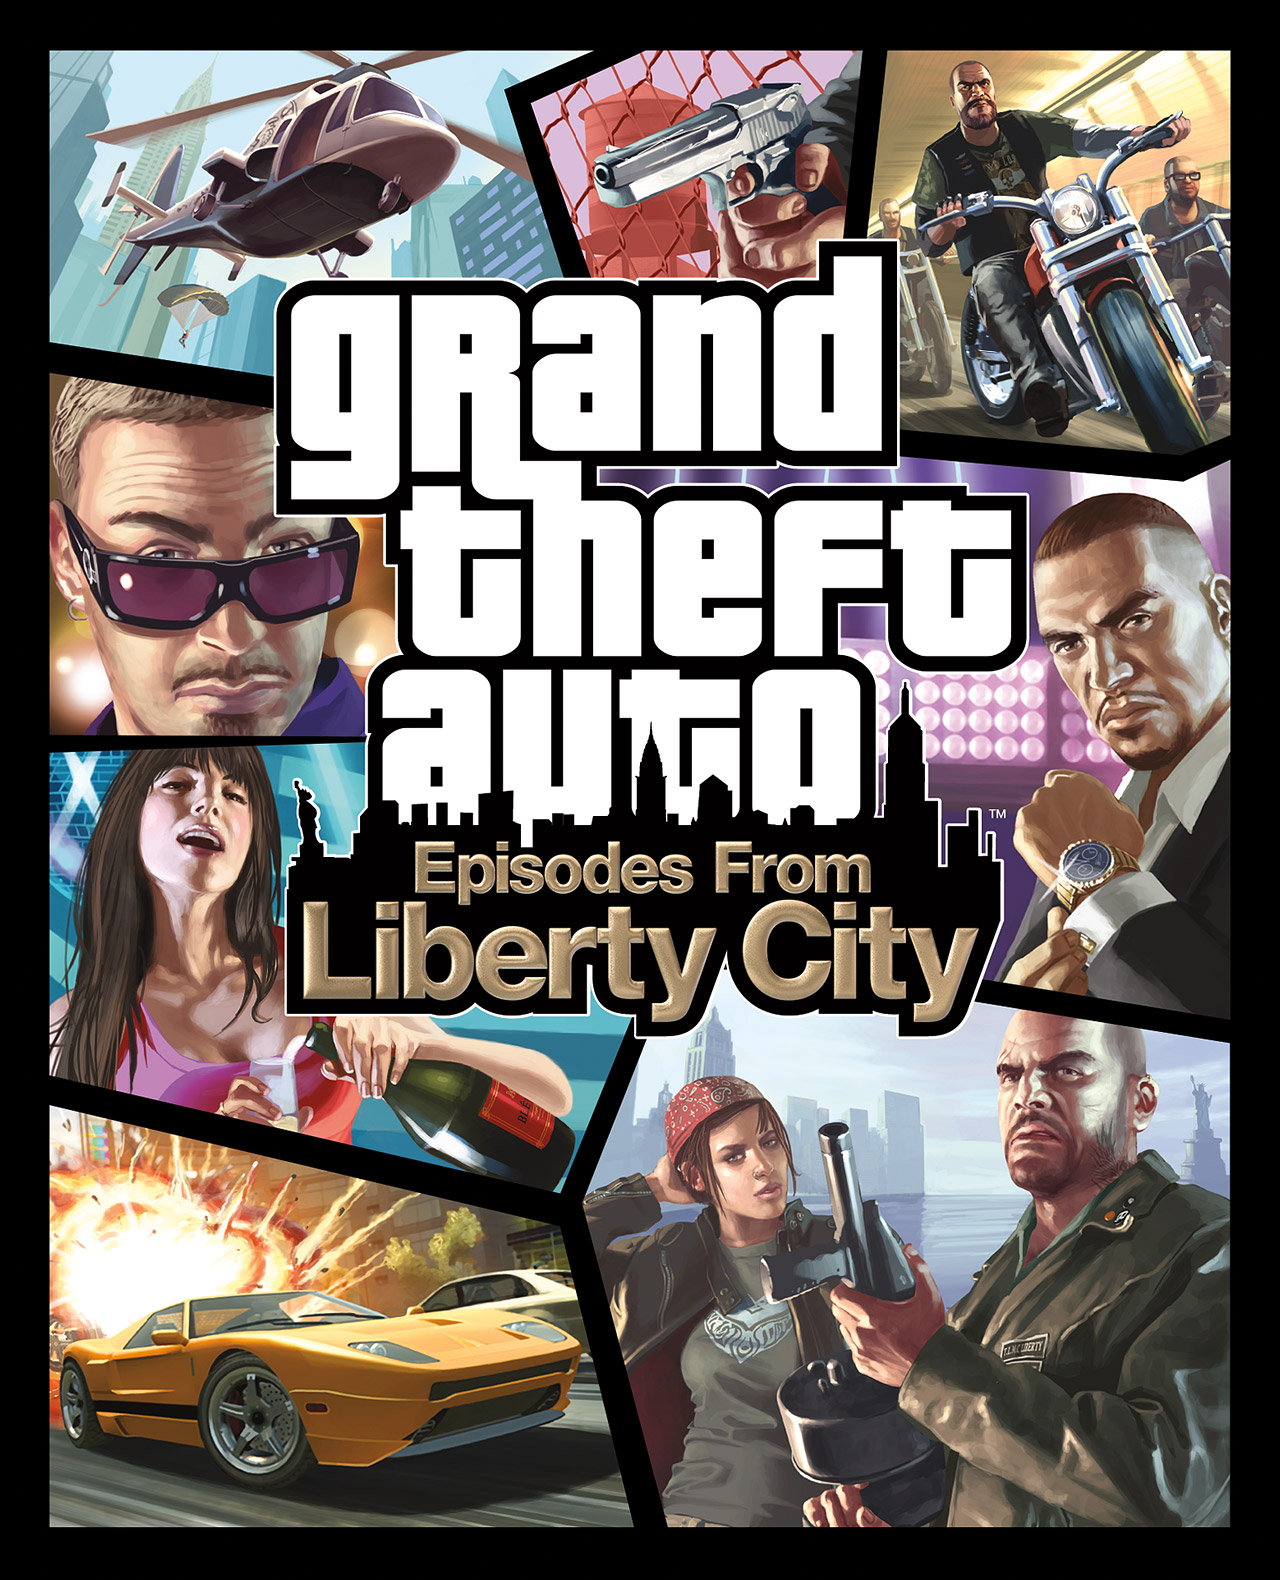 GTA EFLC Neutral Cover.jpg - GTA Wiki, the Grand Theft Auto Wiki - GTA ...